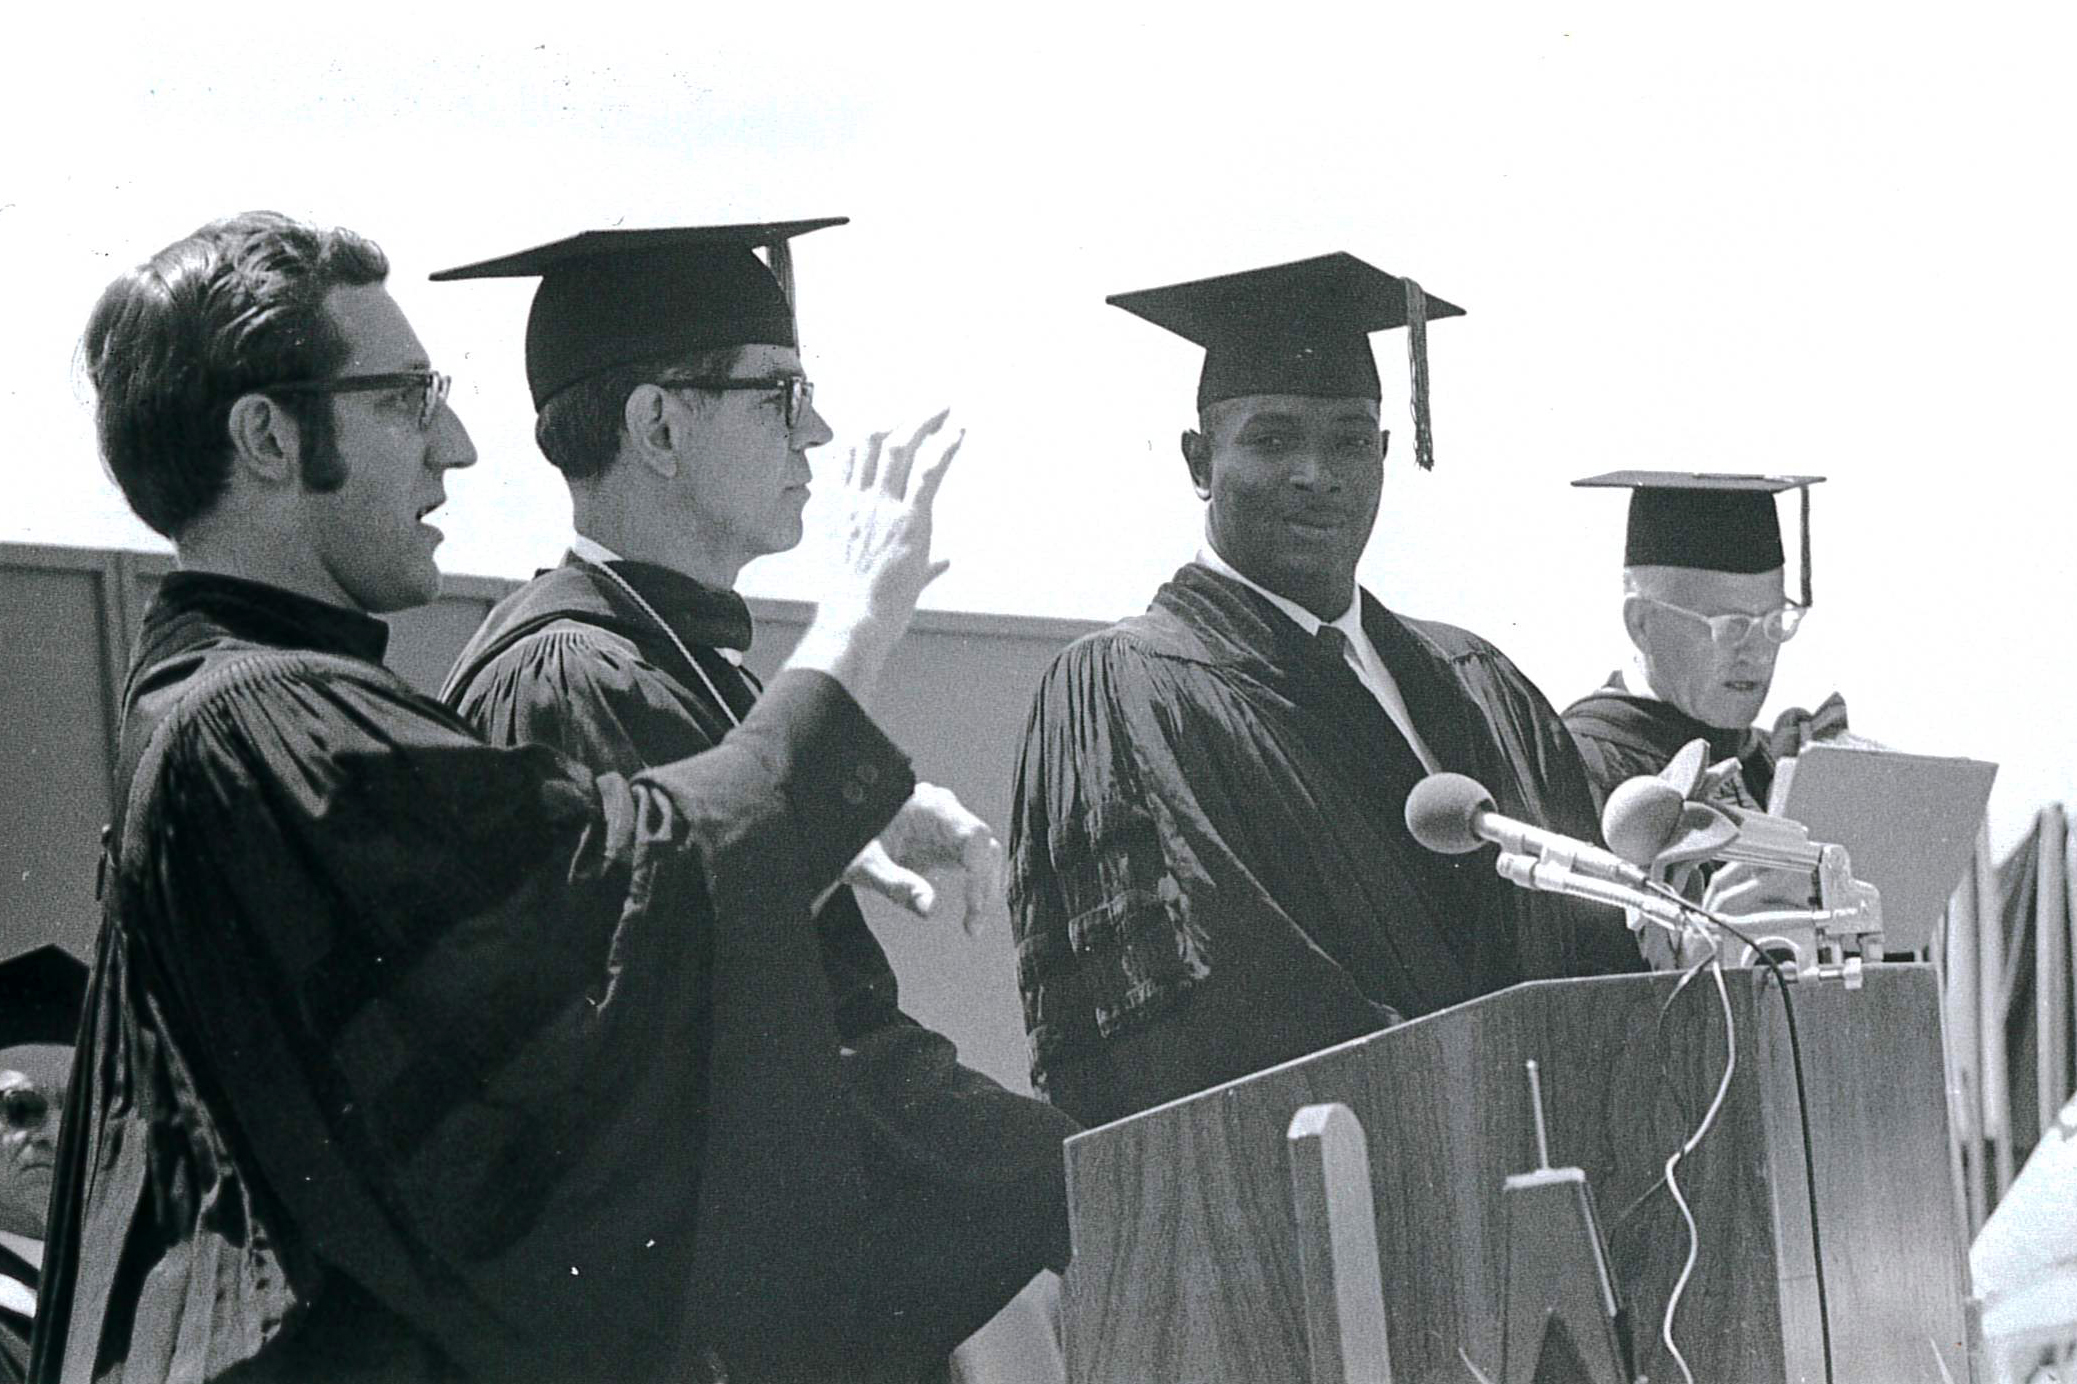 Andrew Foster in Doctoral regalia standing at the podium among three other white men including President Elstad.